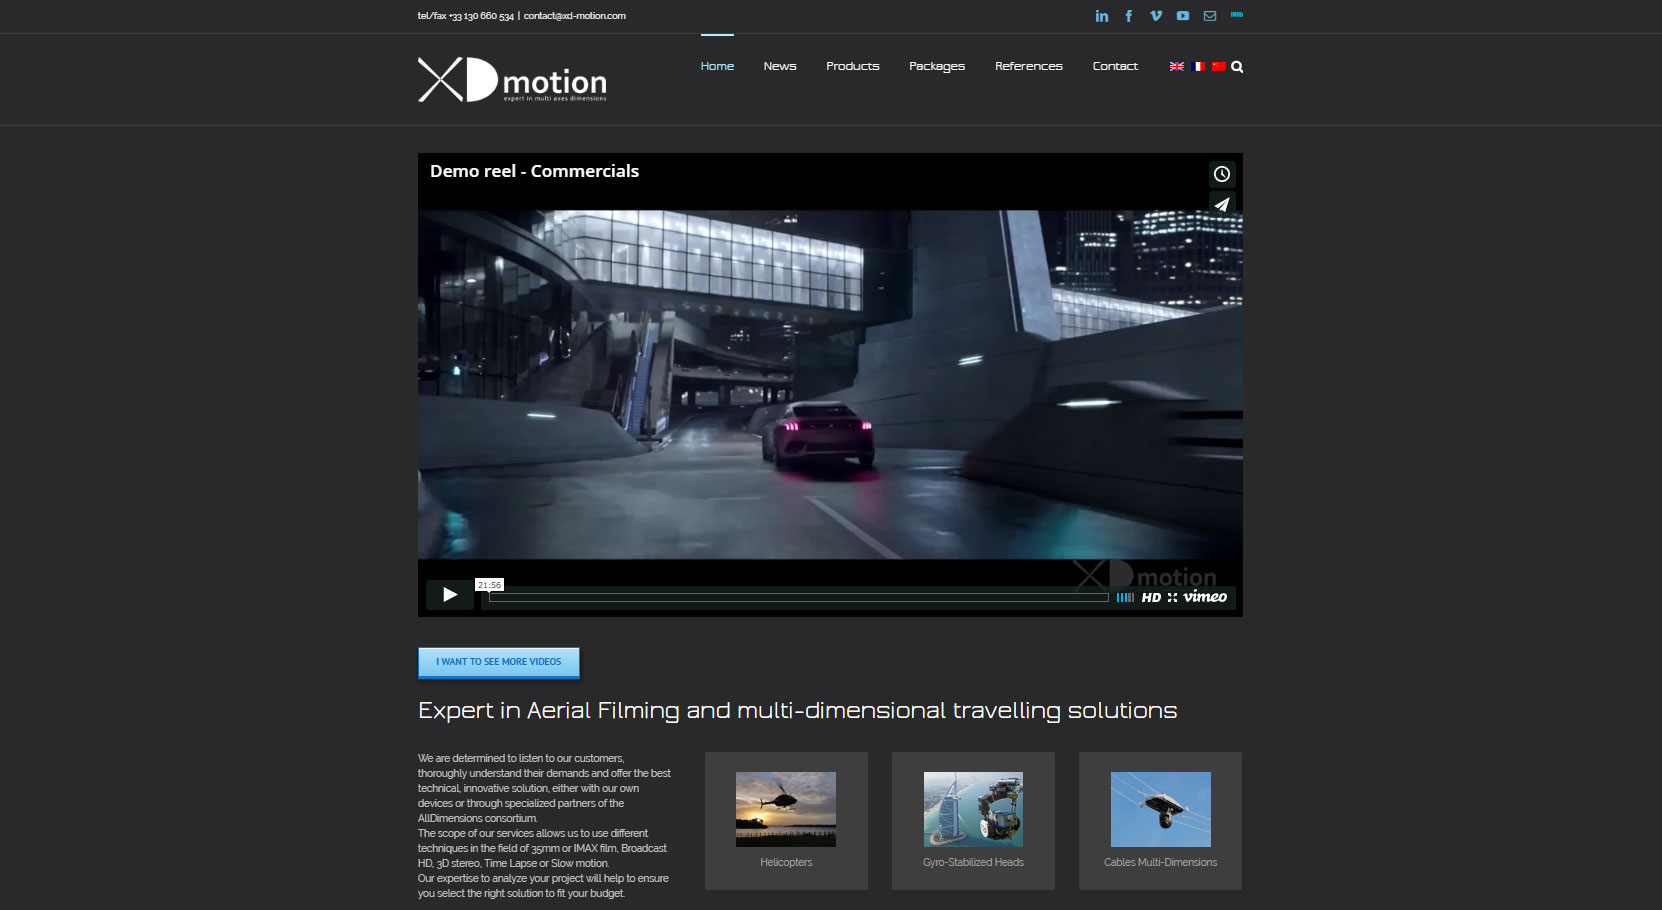 XD motion website